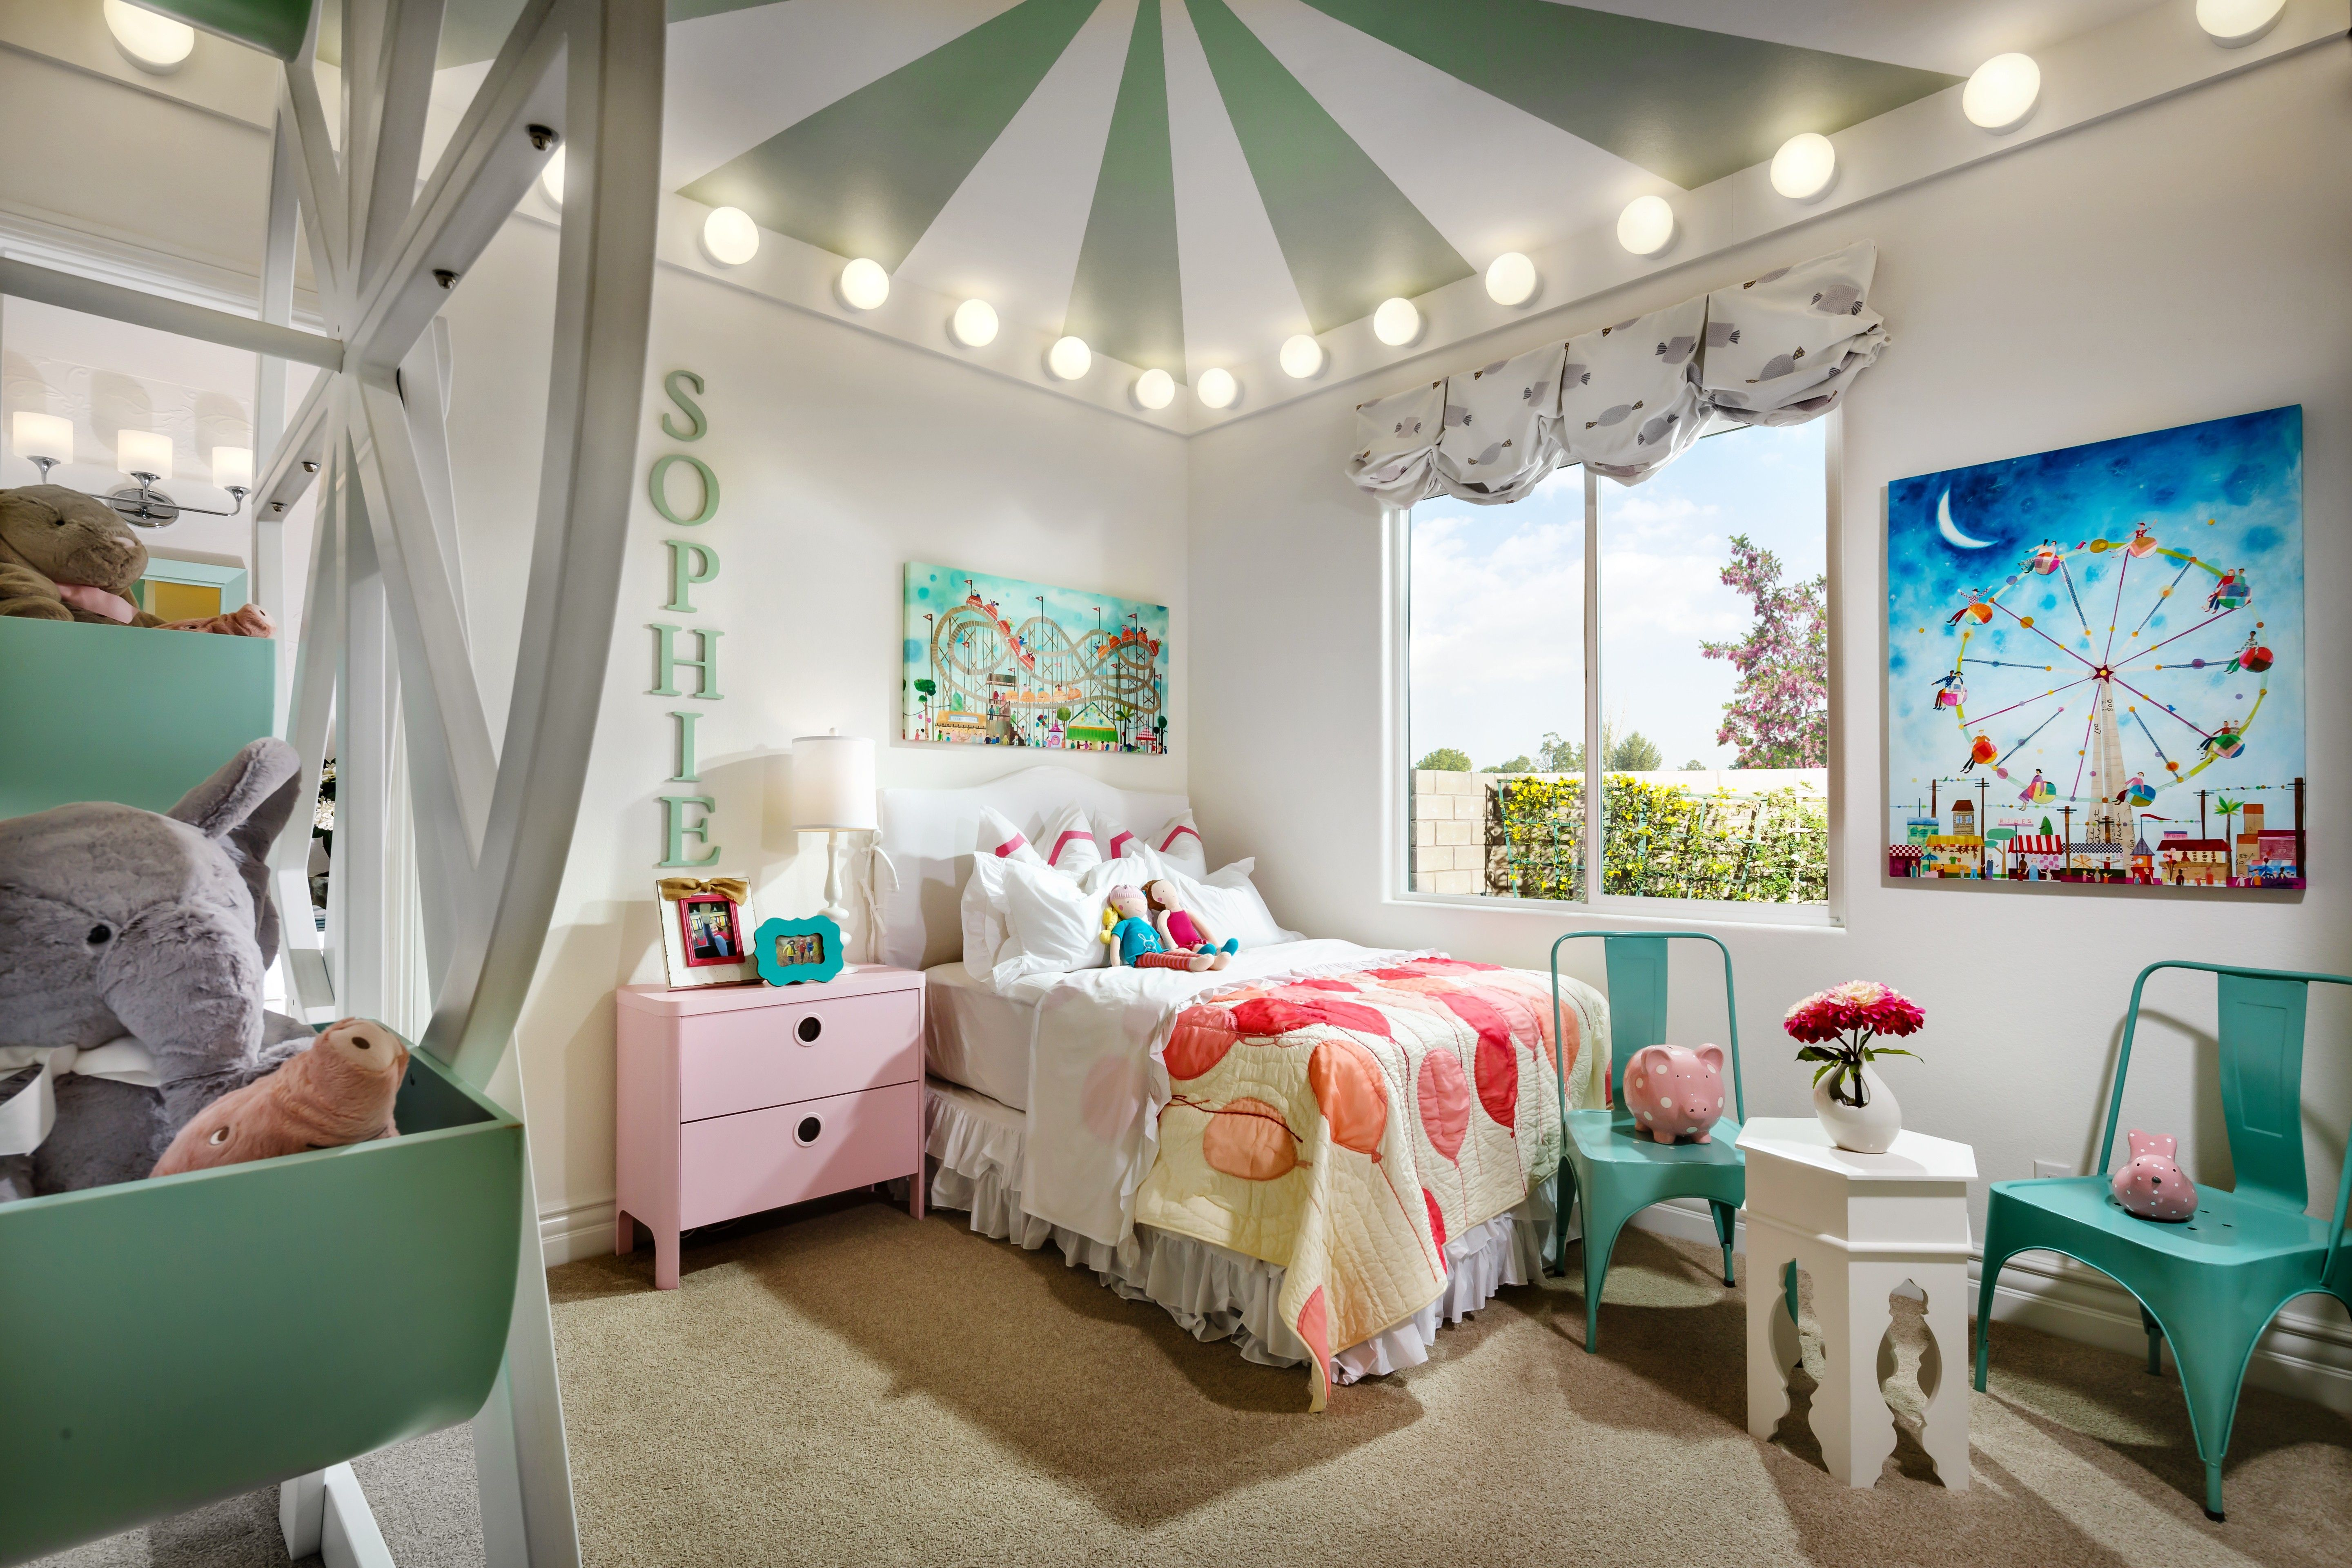 It's All Fun And Games In This Carnival Themed Bedroom